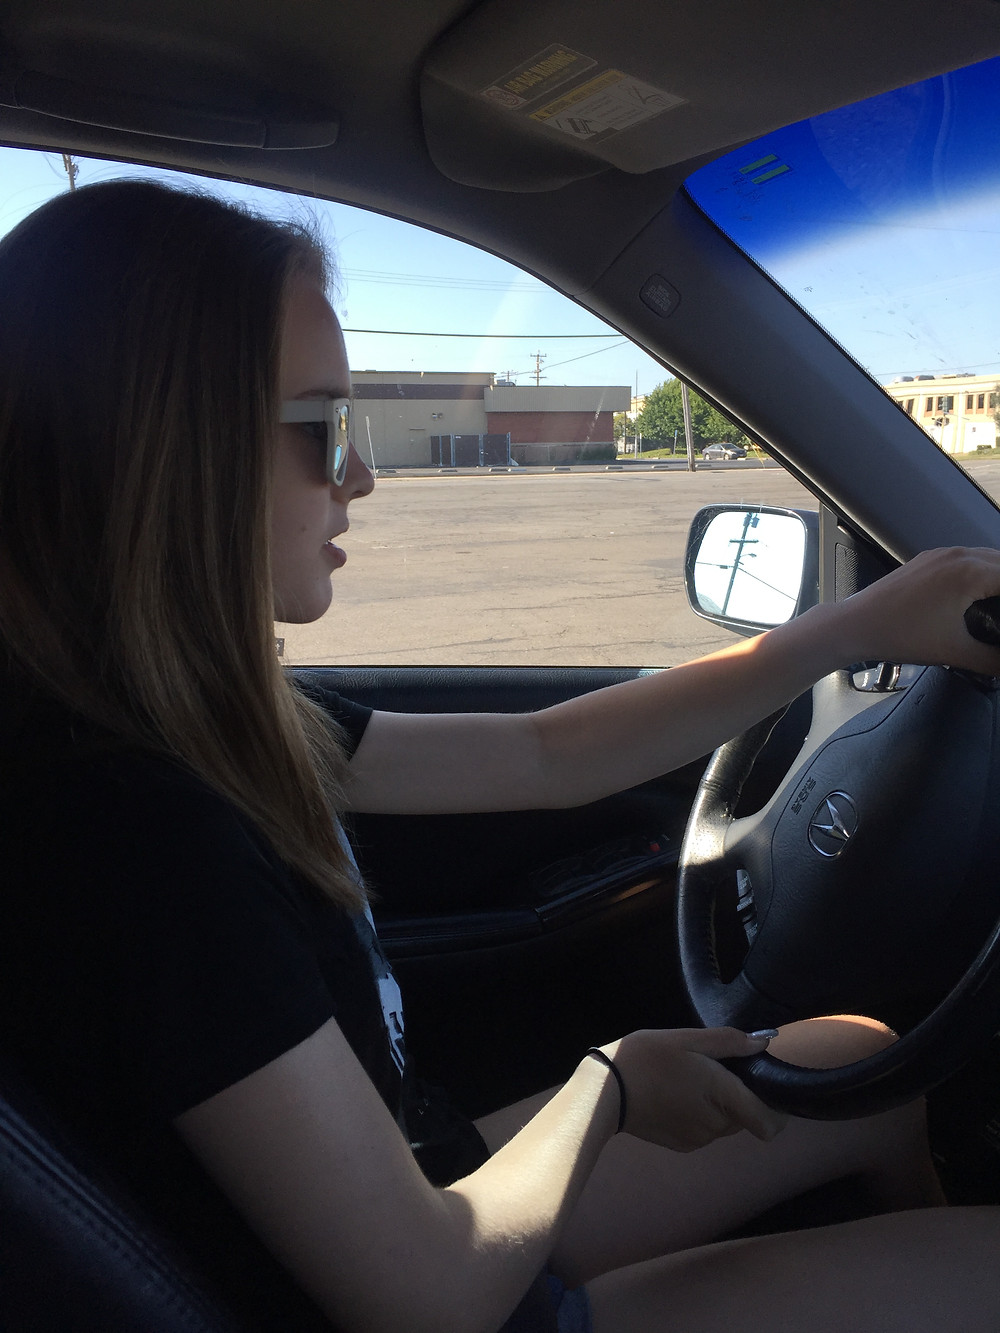 First time behind the wheel